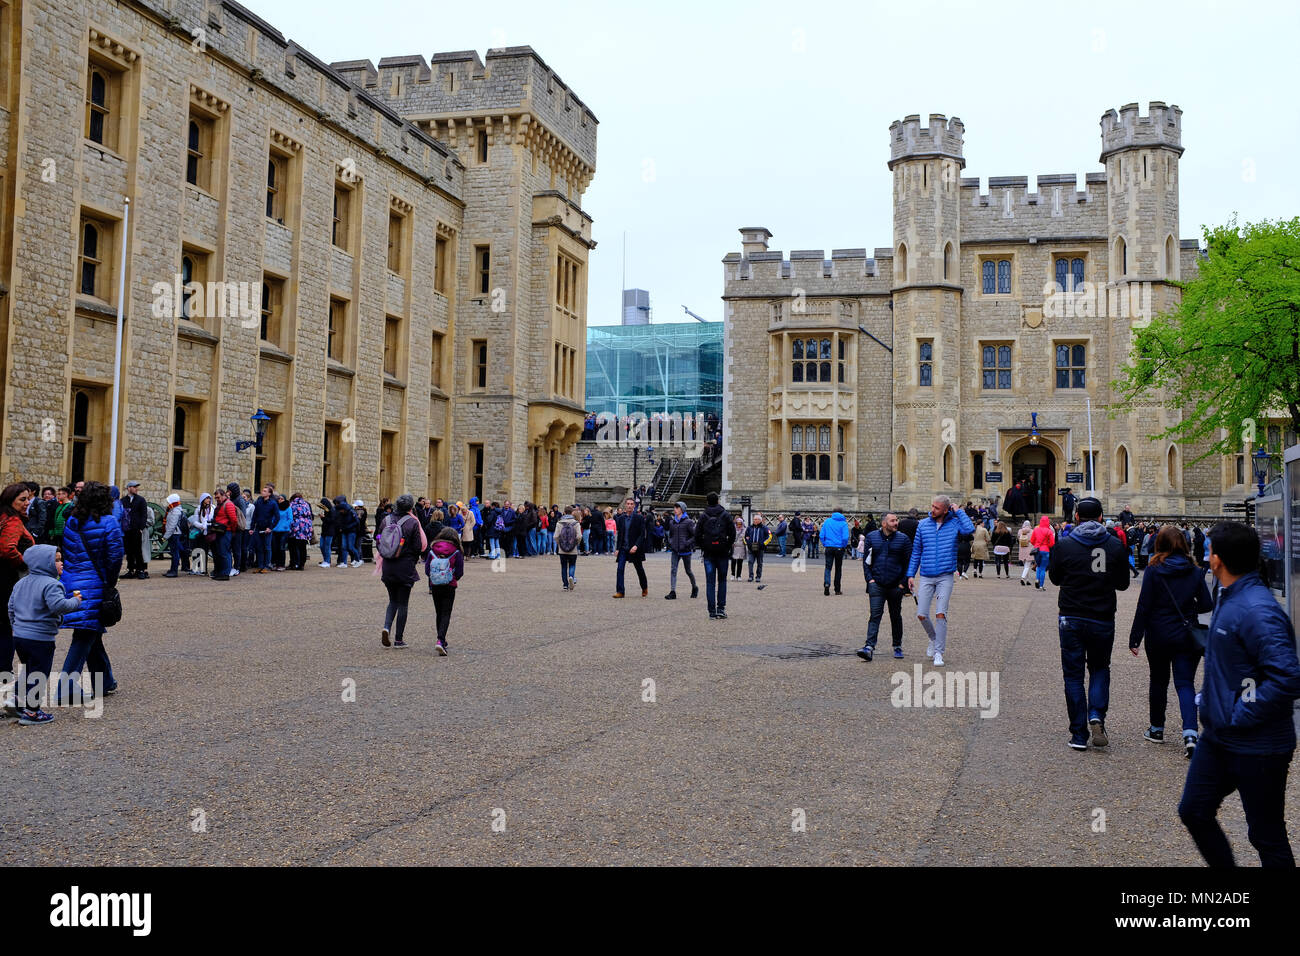 Jewel House at The Tower of London UK - Stock Image